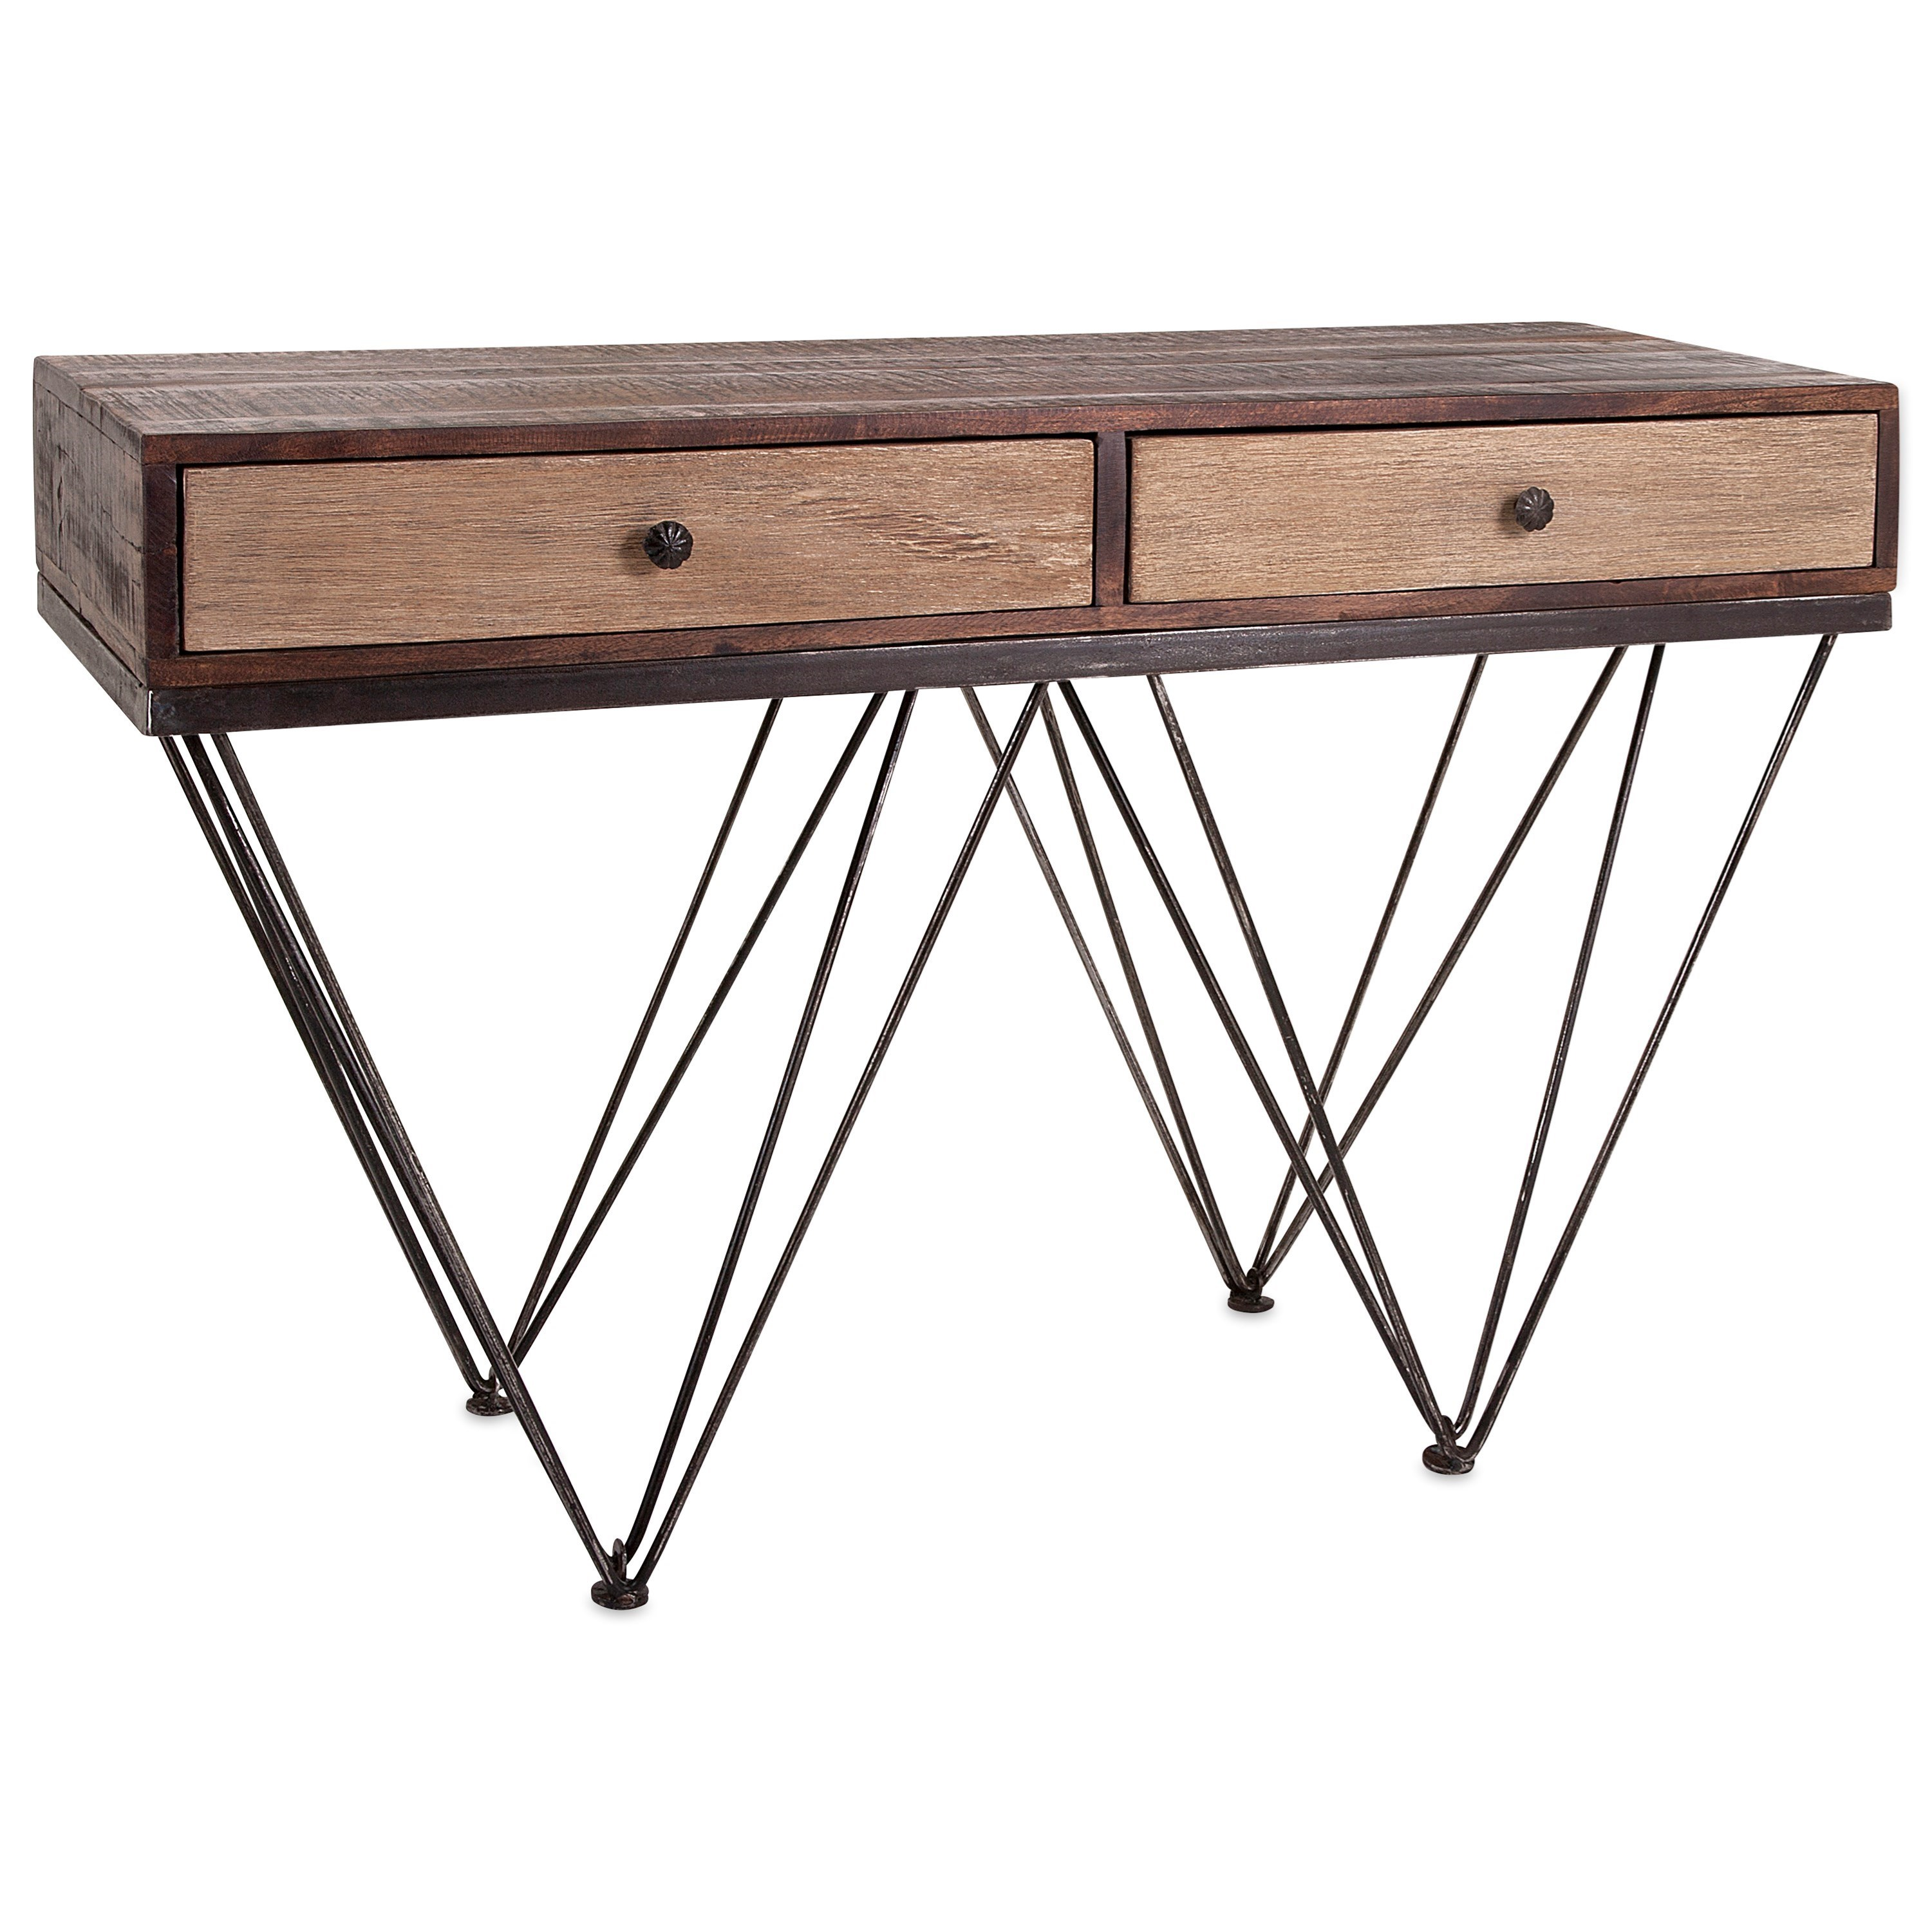 Accent Tables and Cabinets Davena Console by IMAX Worldwide Home at Alison Craig Home Furnishings